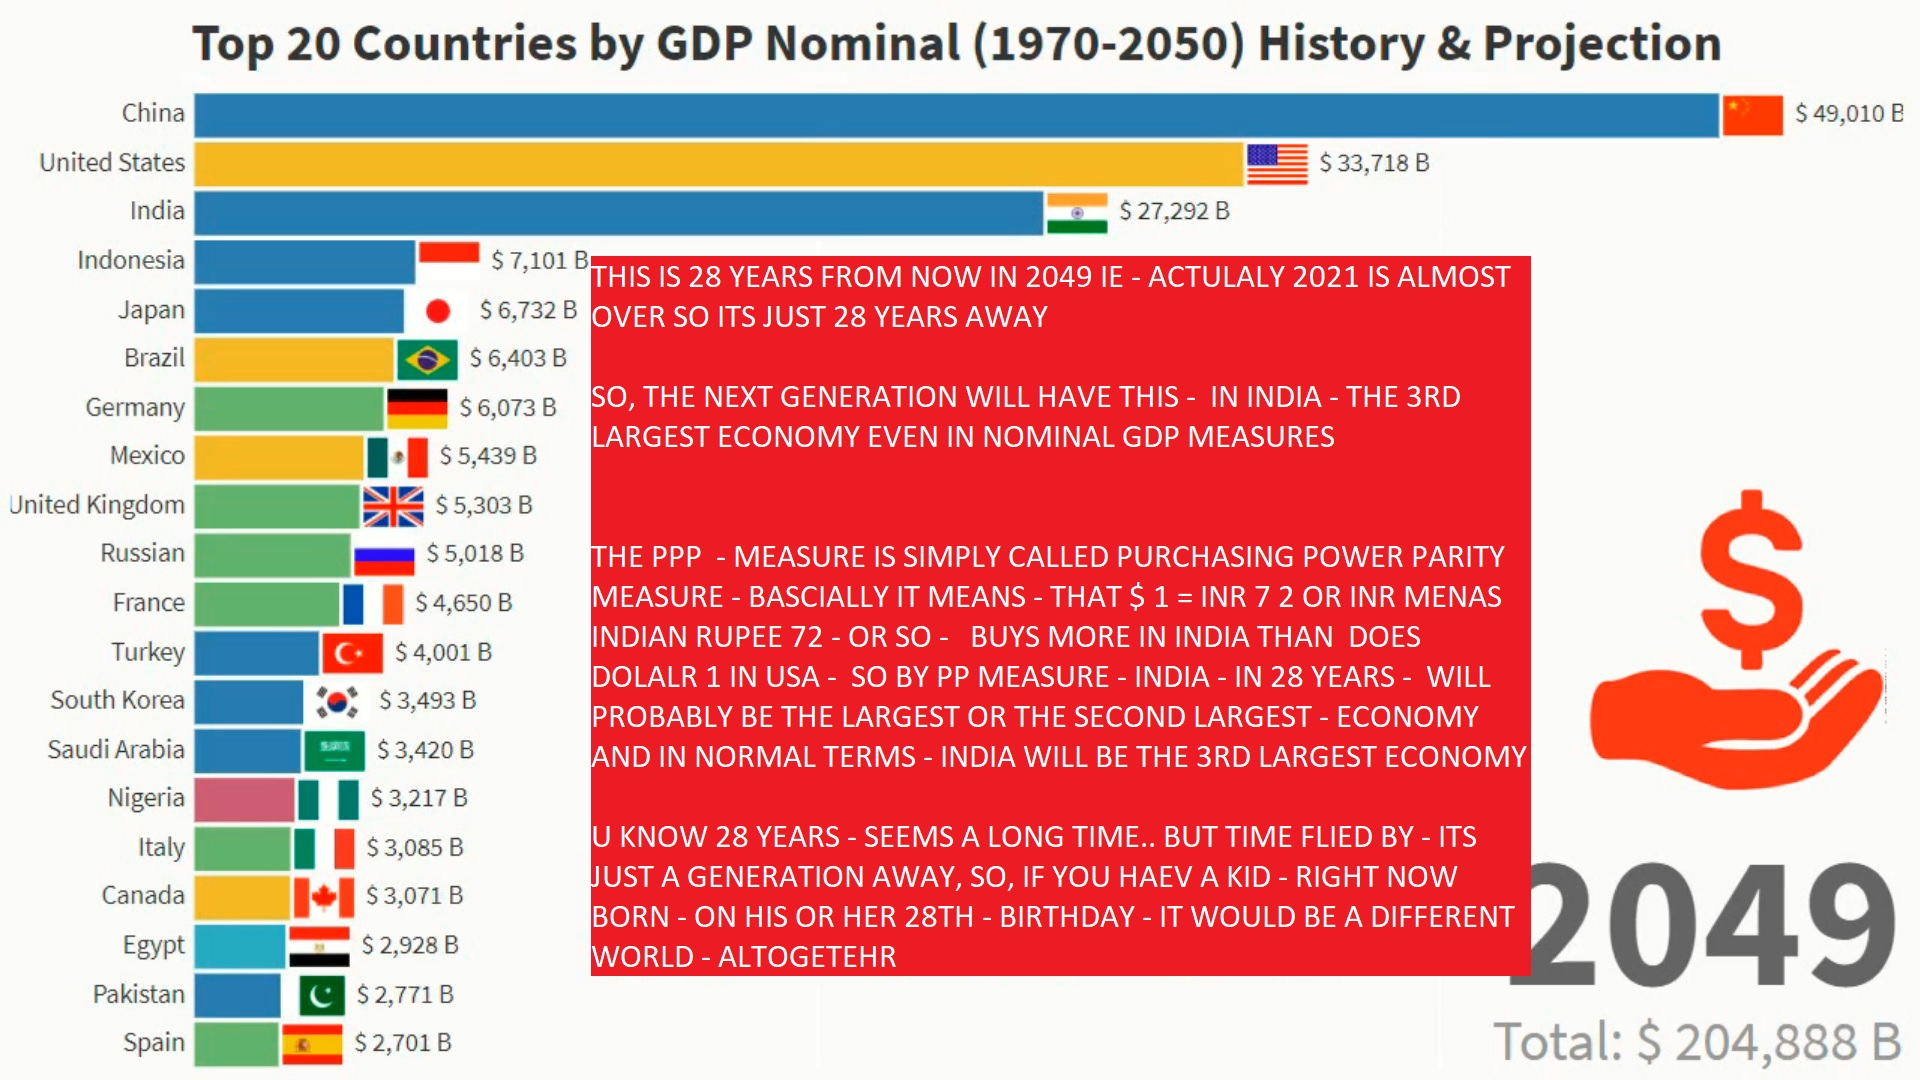 INDIA - NOMIAL GDP - IN 2049 AND 2050 - BY AJAY MISHRA THSI IS NOMINAL GDP PROJECTIONS